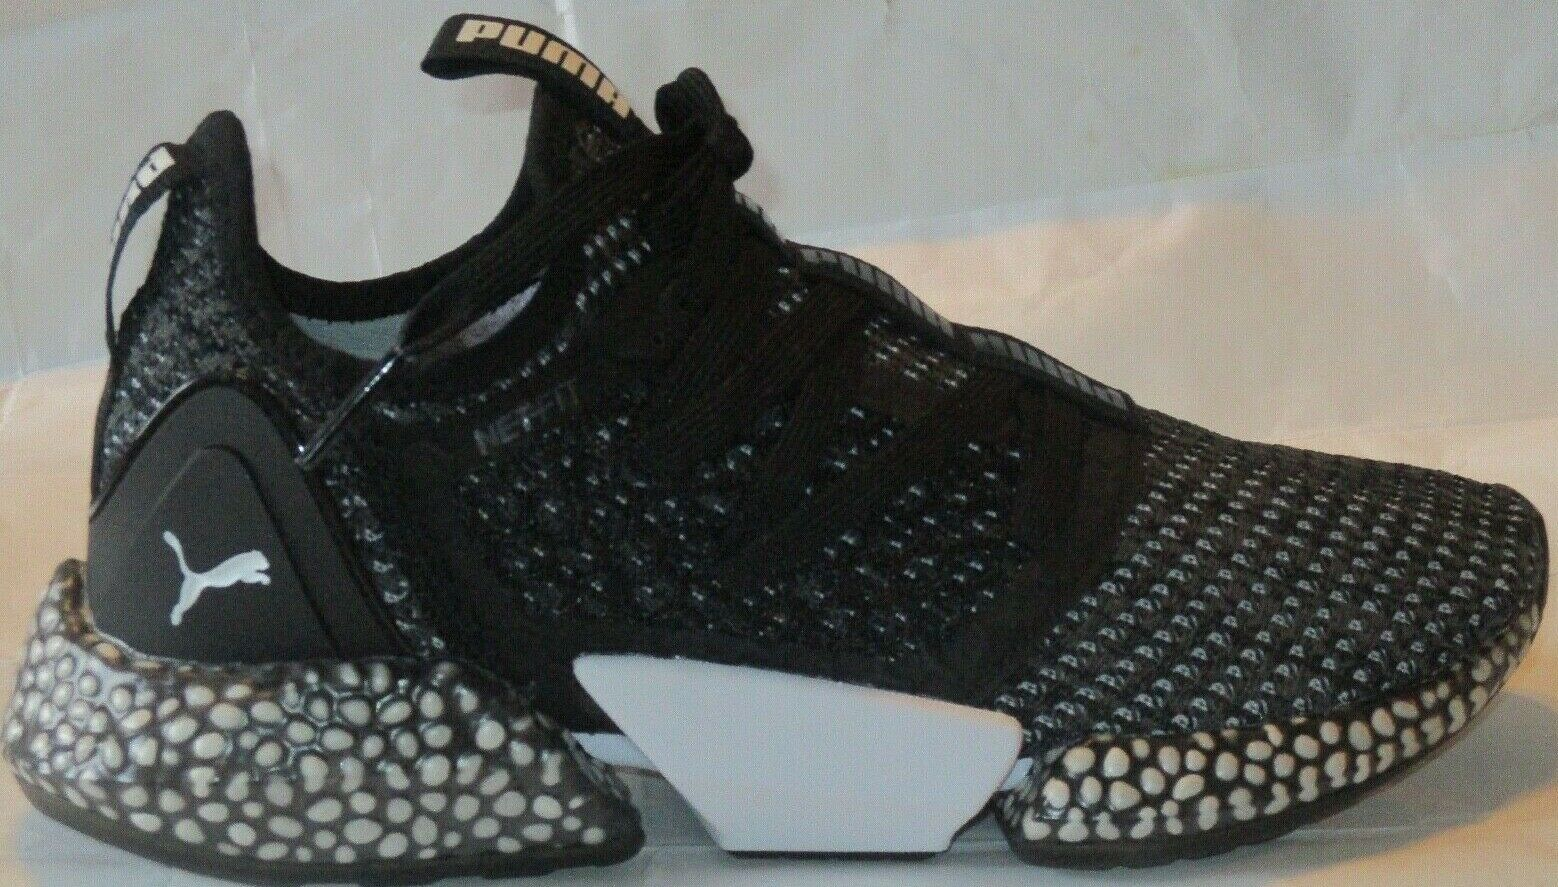 MEN'S PUMA HYBRID ROCKET NETFIT PUMA BLACK-IRON GATE  SHOES SIZE 8